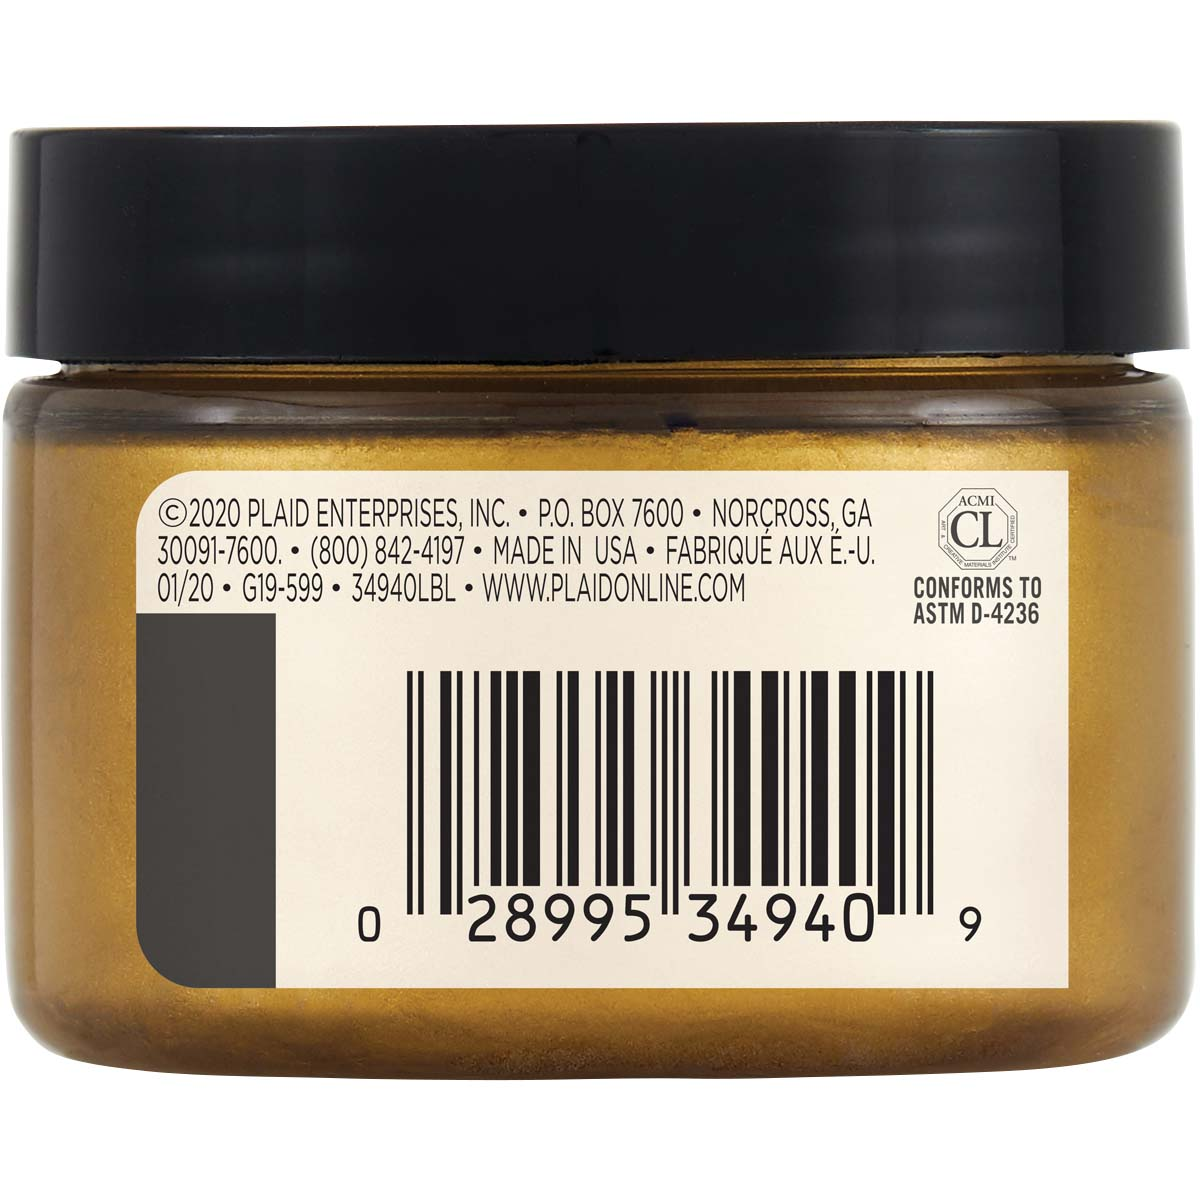 FolkArt ® Design Creme™ - Gold, 3 oz. - 34940